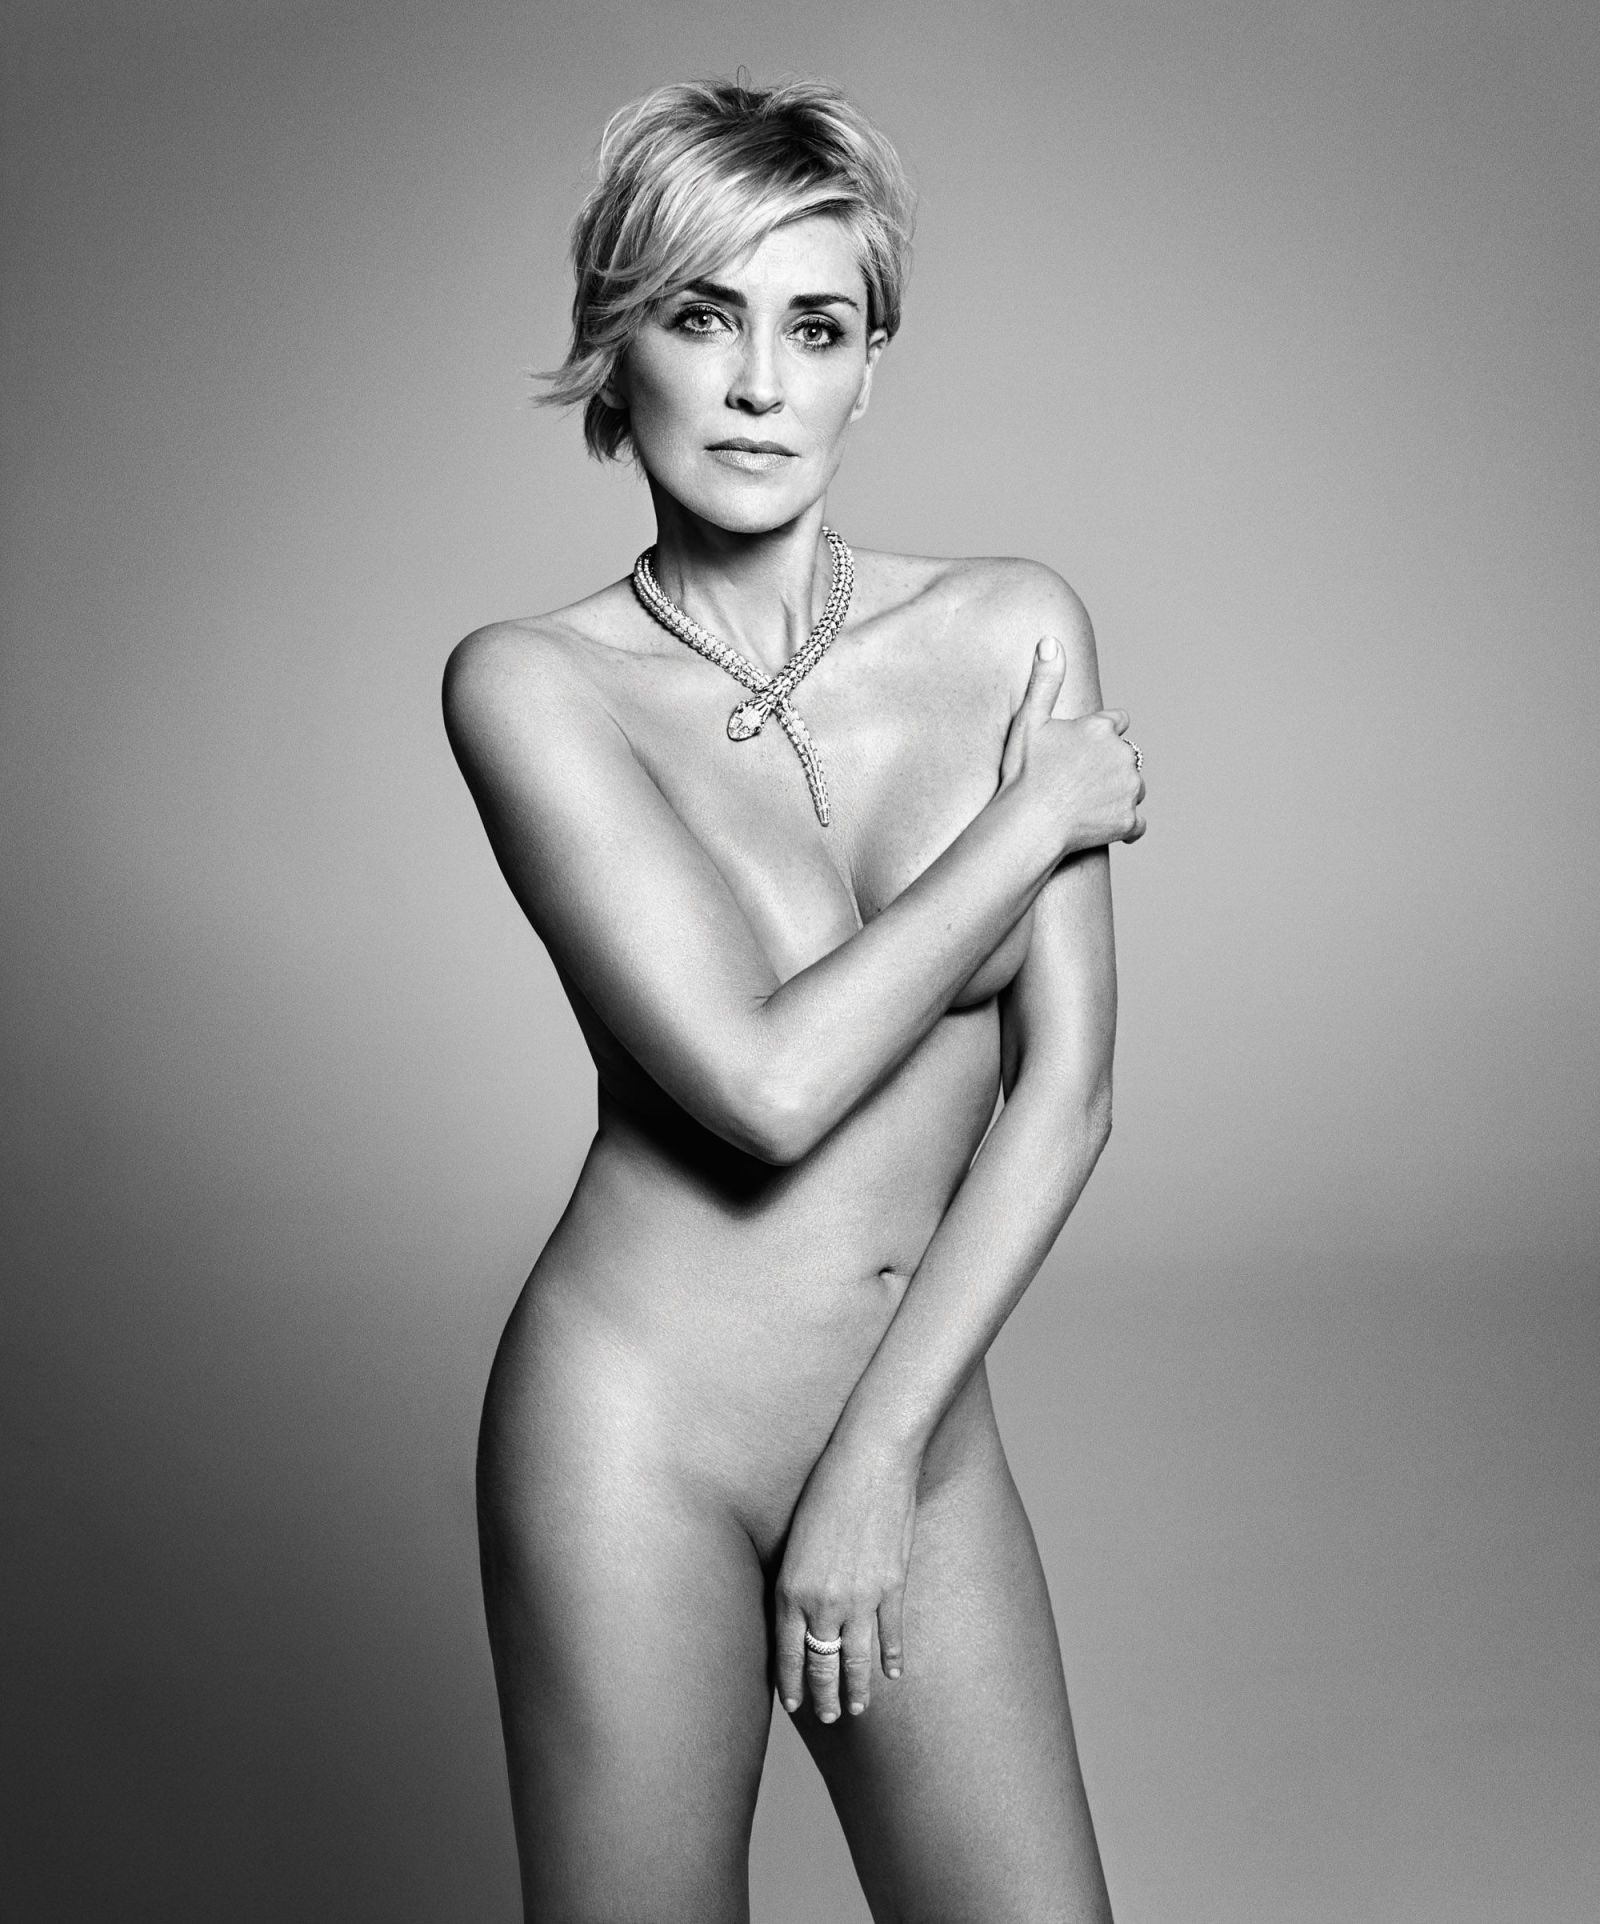 Everyone Agrees: Sharon Stone's Nude Photo Shoot Is Stunning